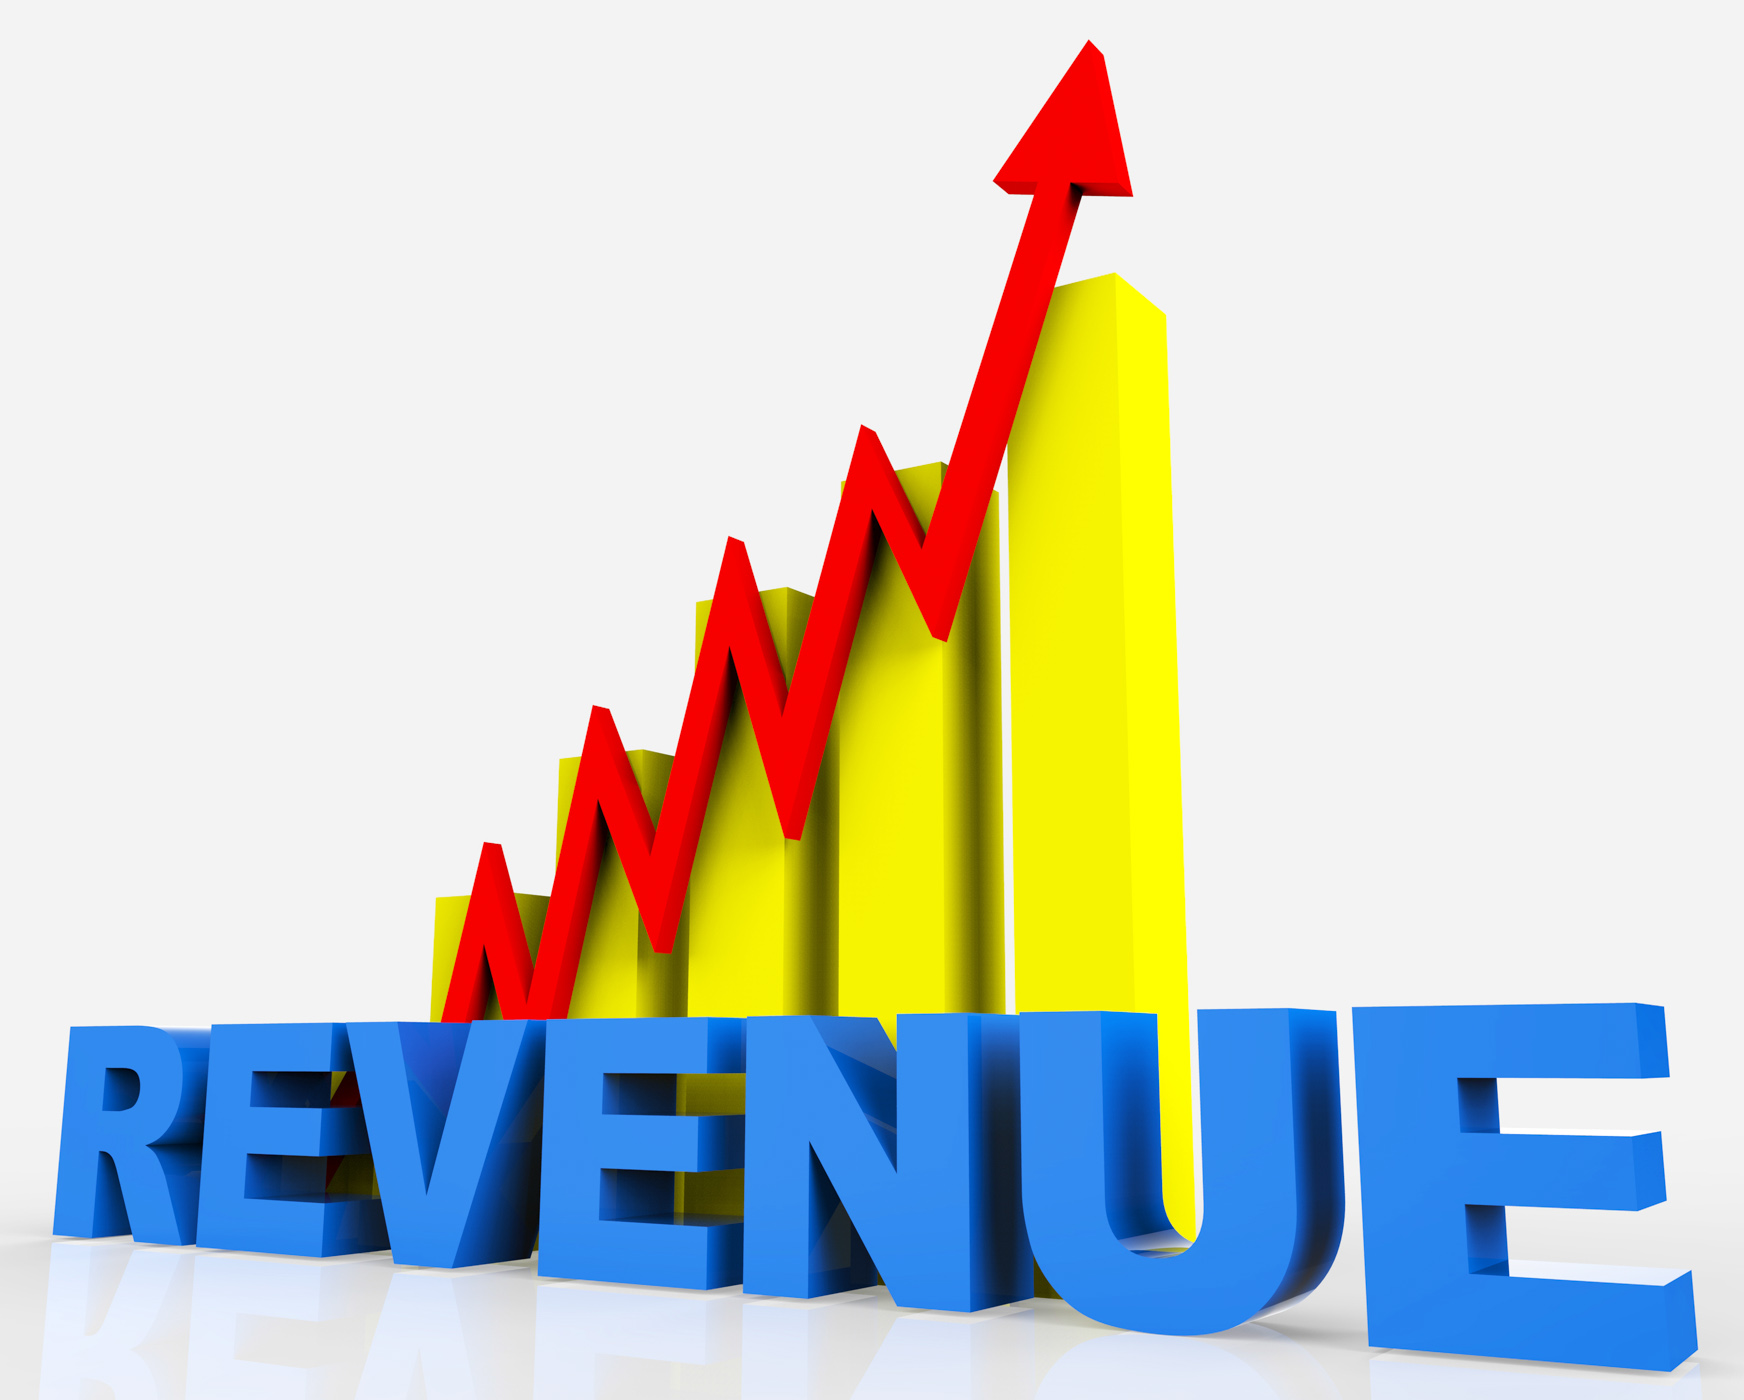 Increase revenue represents business graph and advancing photo